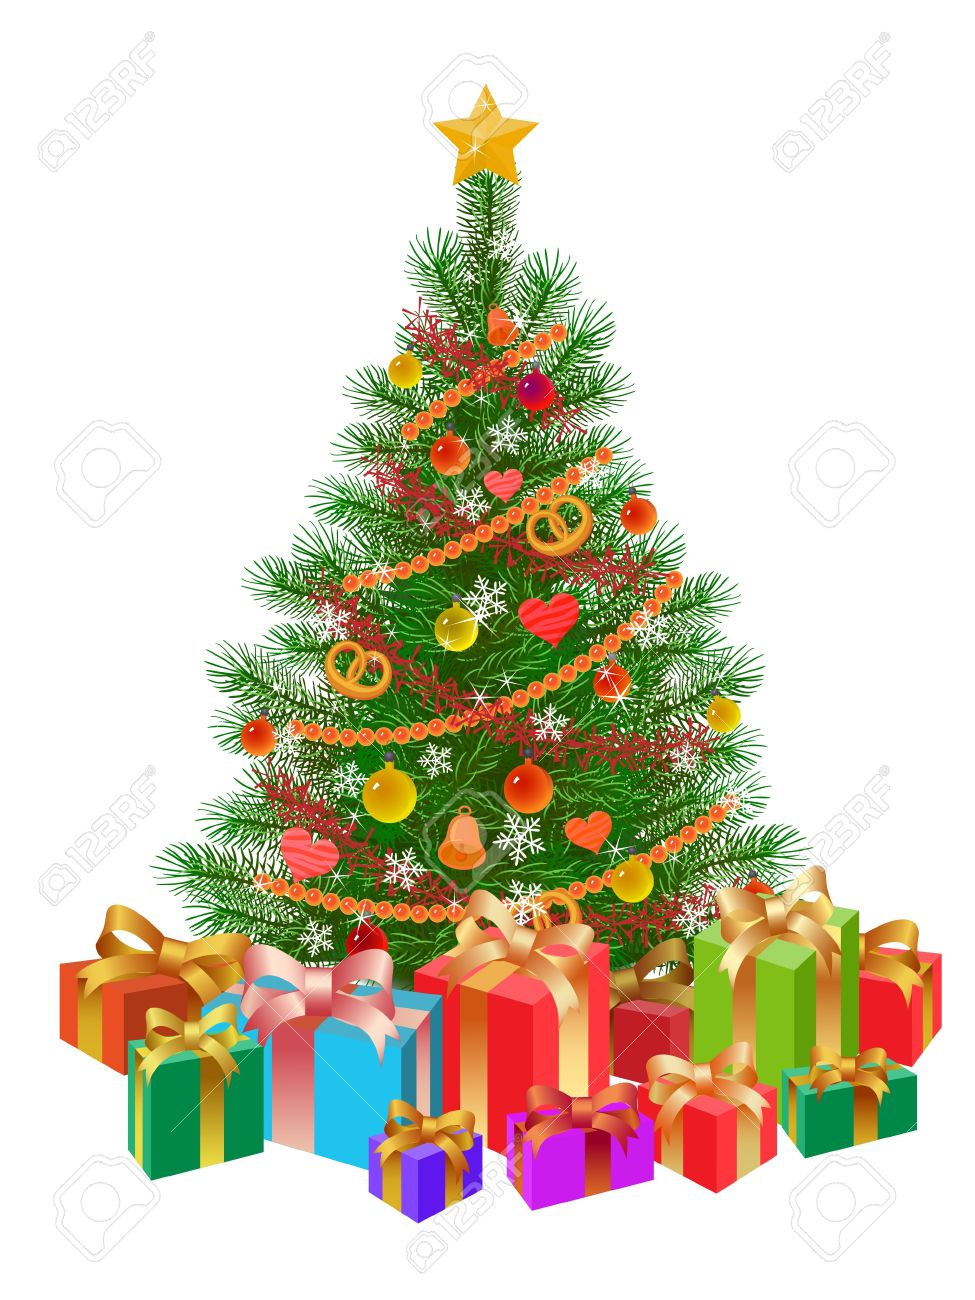 Decorated Christmas Tree Presents Isolated On White Royalty Free